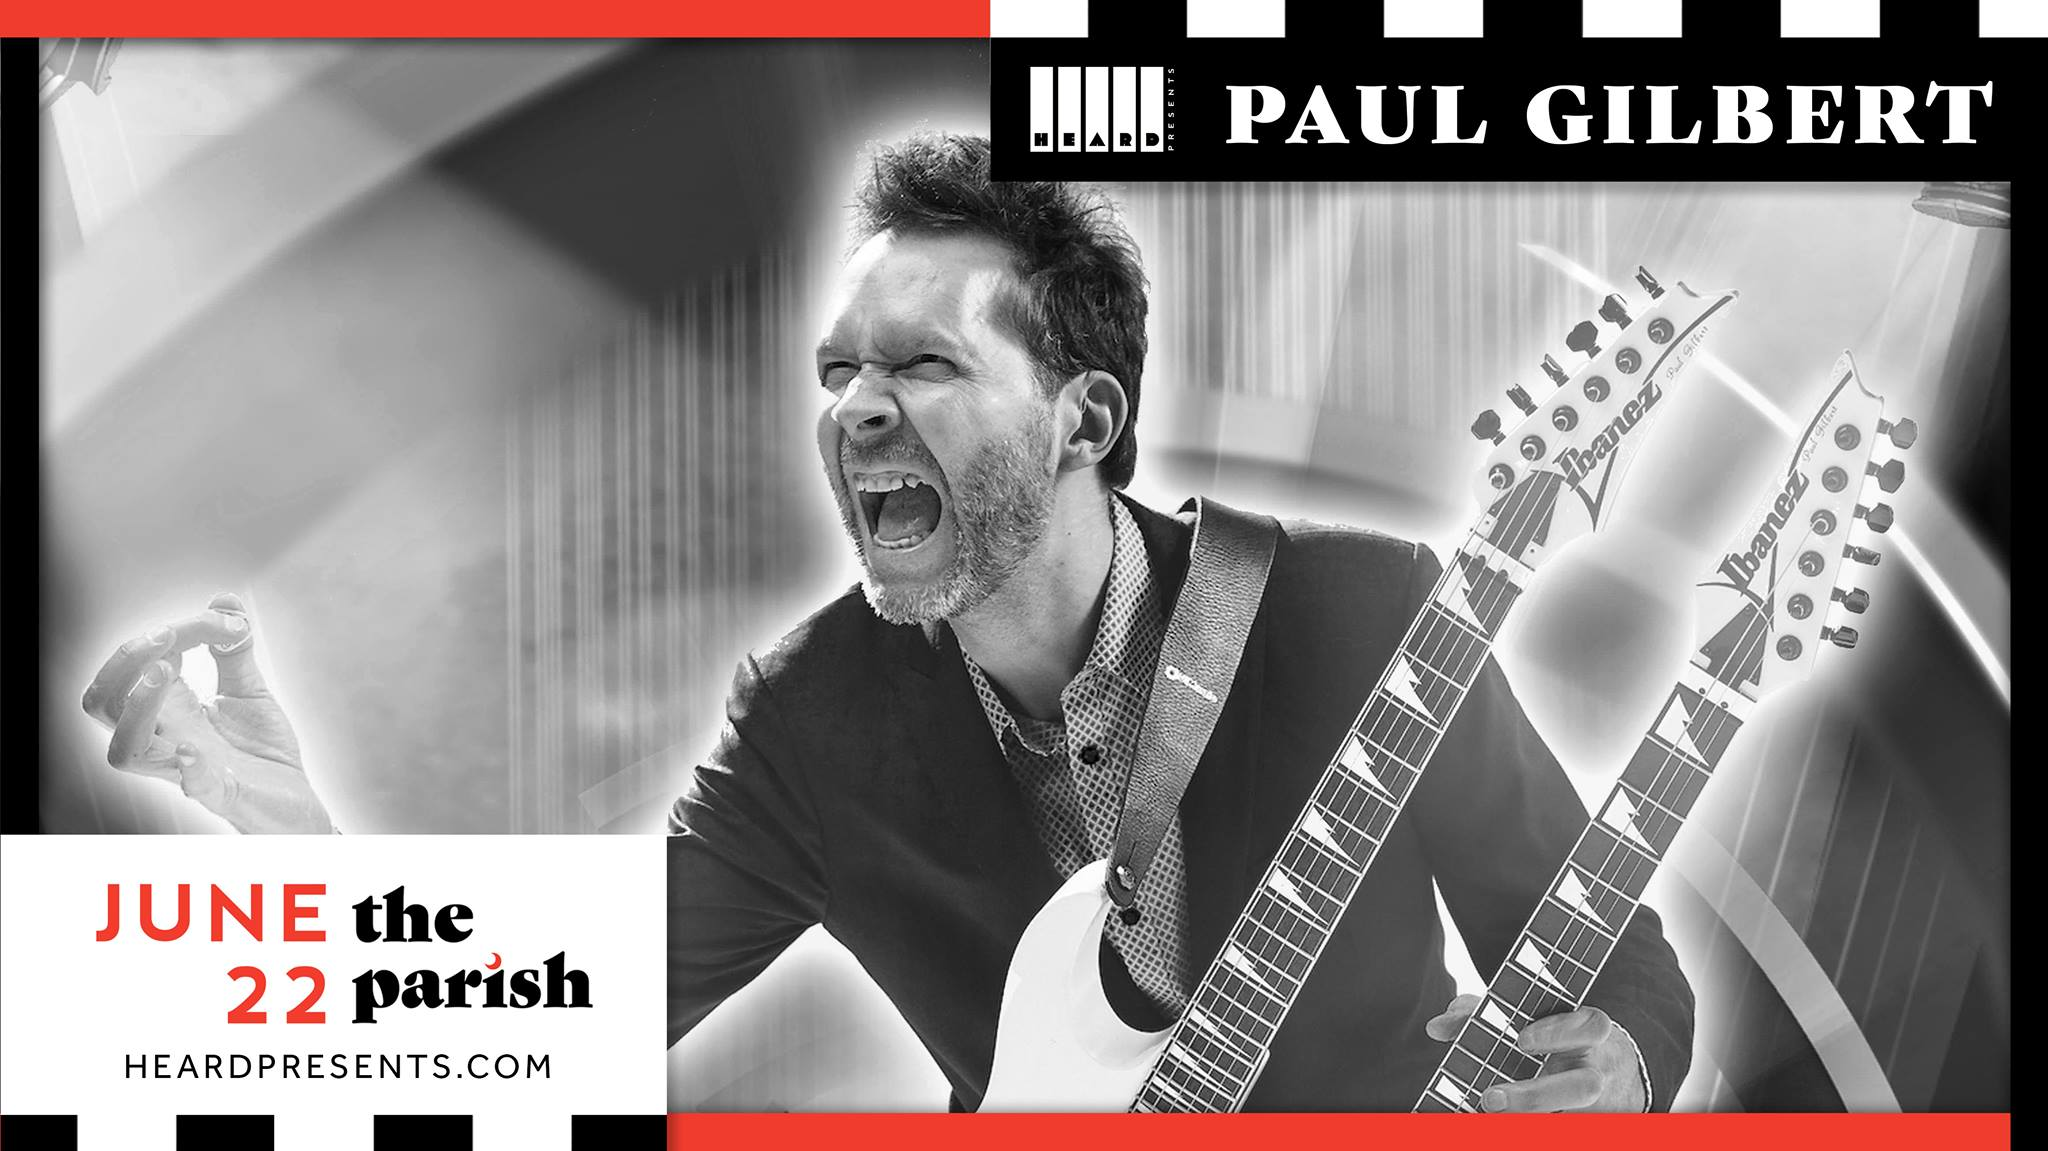 Paul Gilbert w/ Amplified Heat